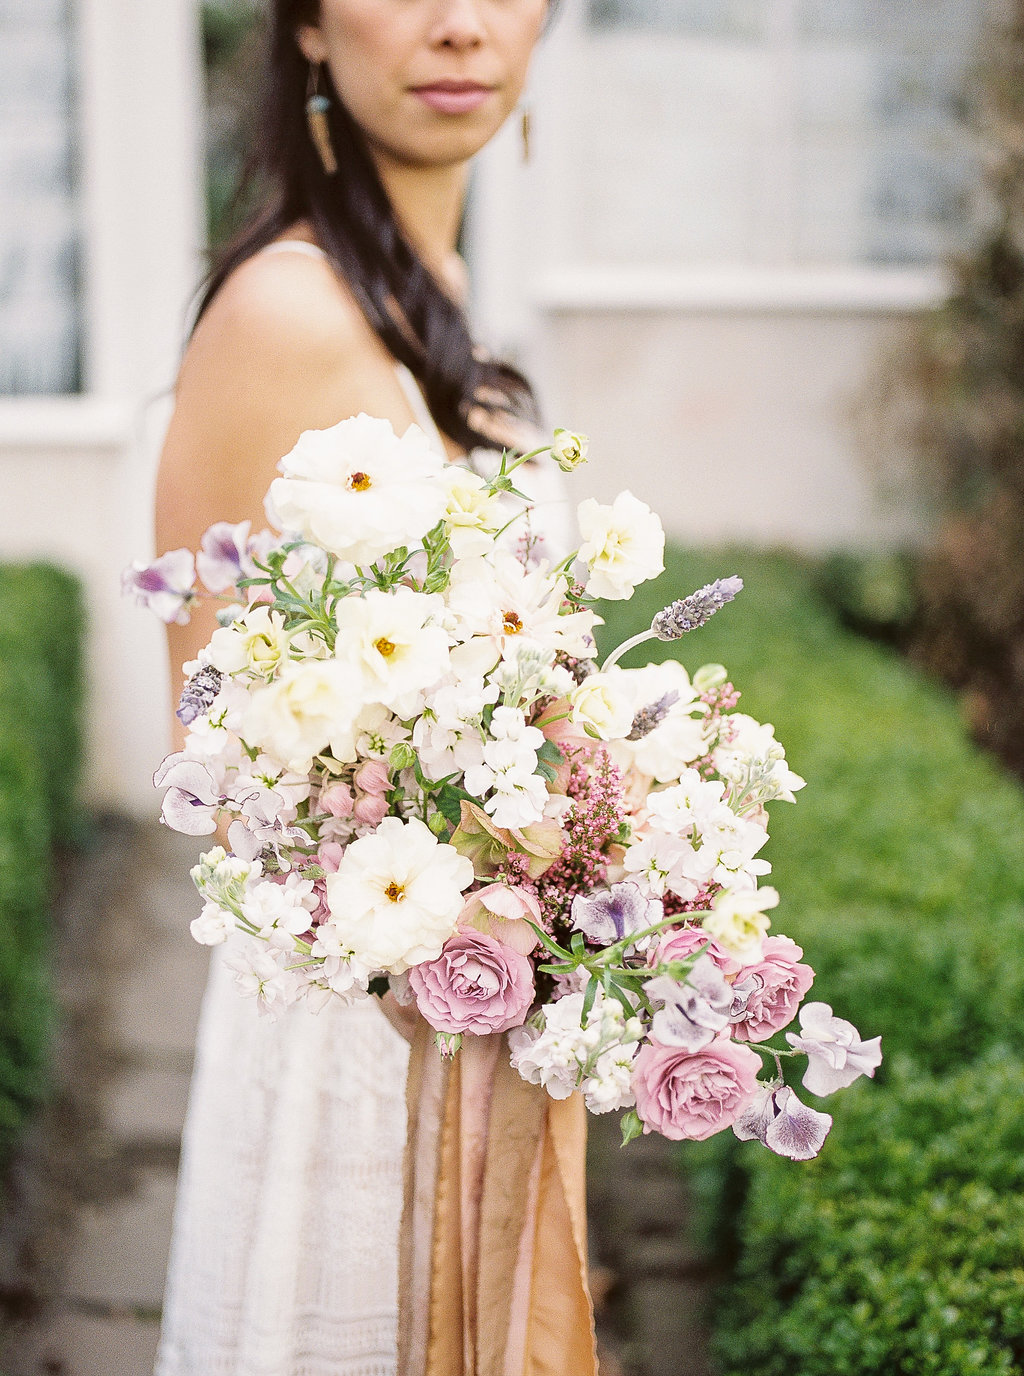 Ethereal Pink Wedding flowers with the bridal bouquet